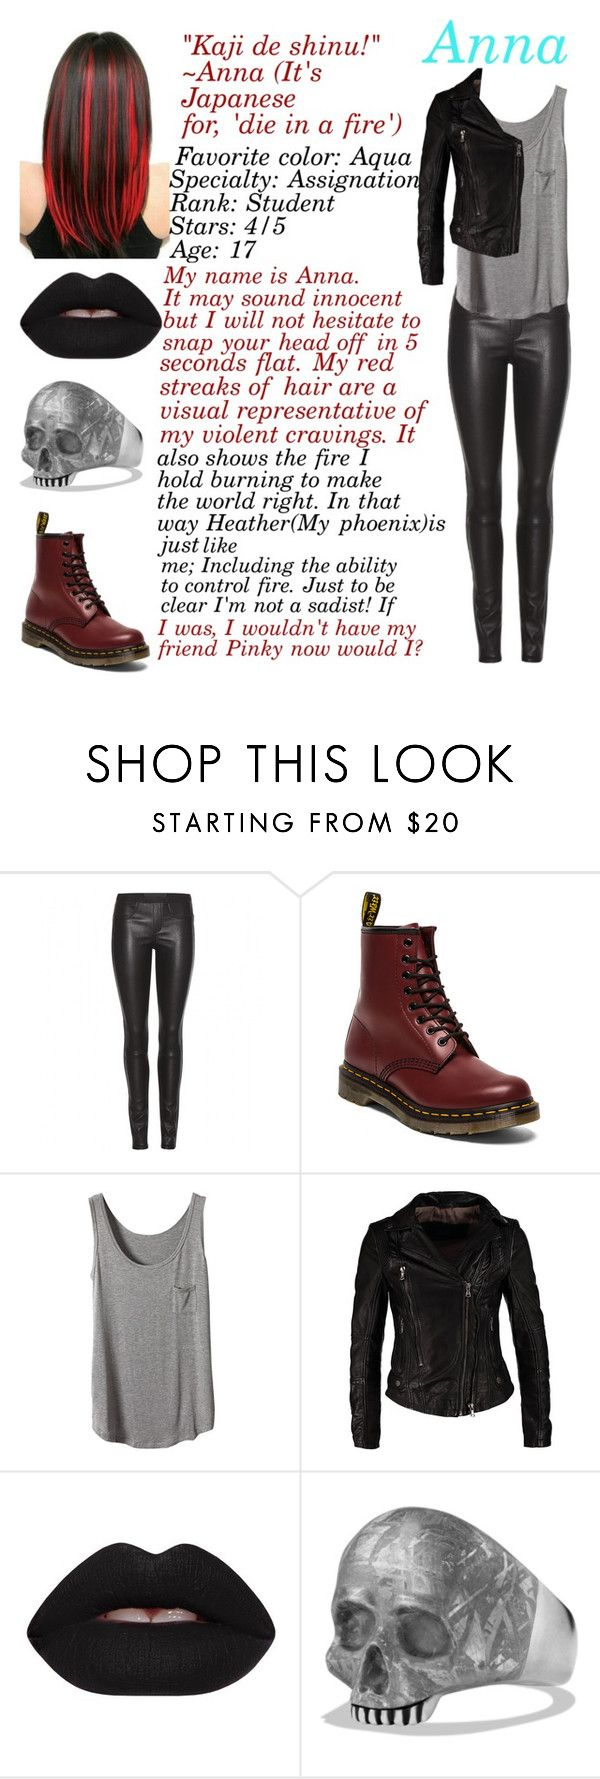 """Anna - CMMA"" by weird-isawesome ❤ liked on Polyvore featuring Helmut Lang, Dr. Martens, Lime Crime and David Yurman"